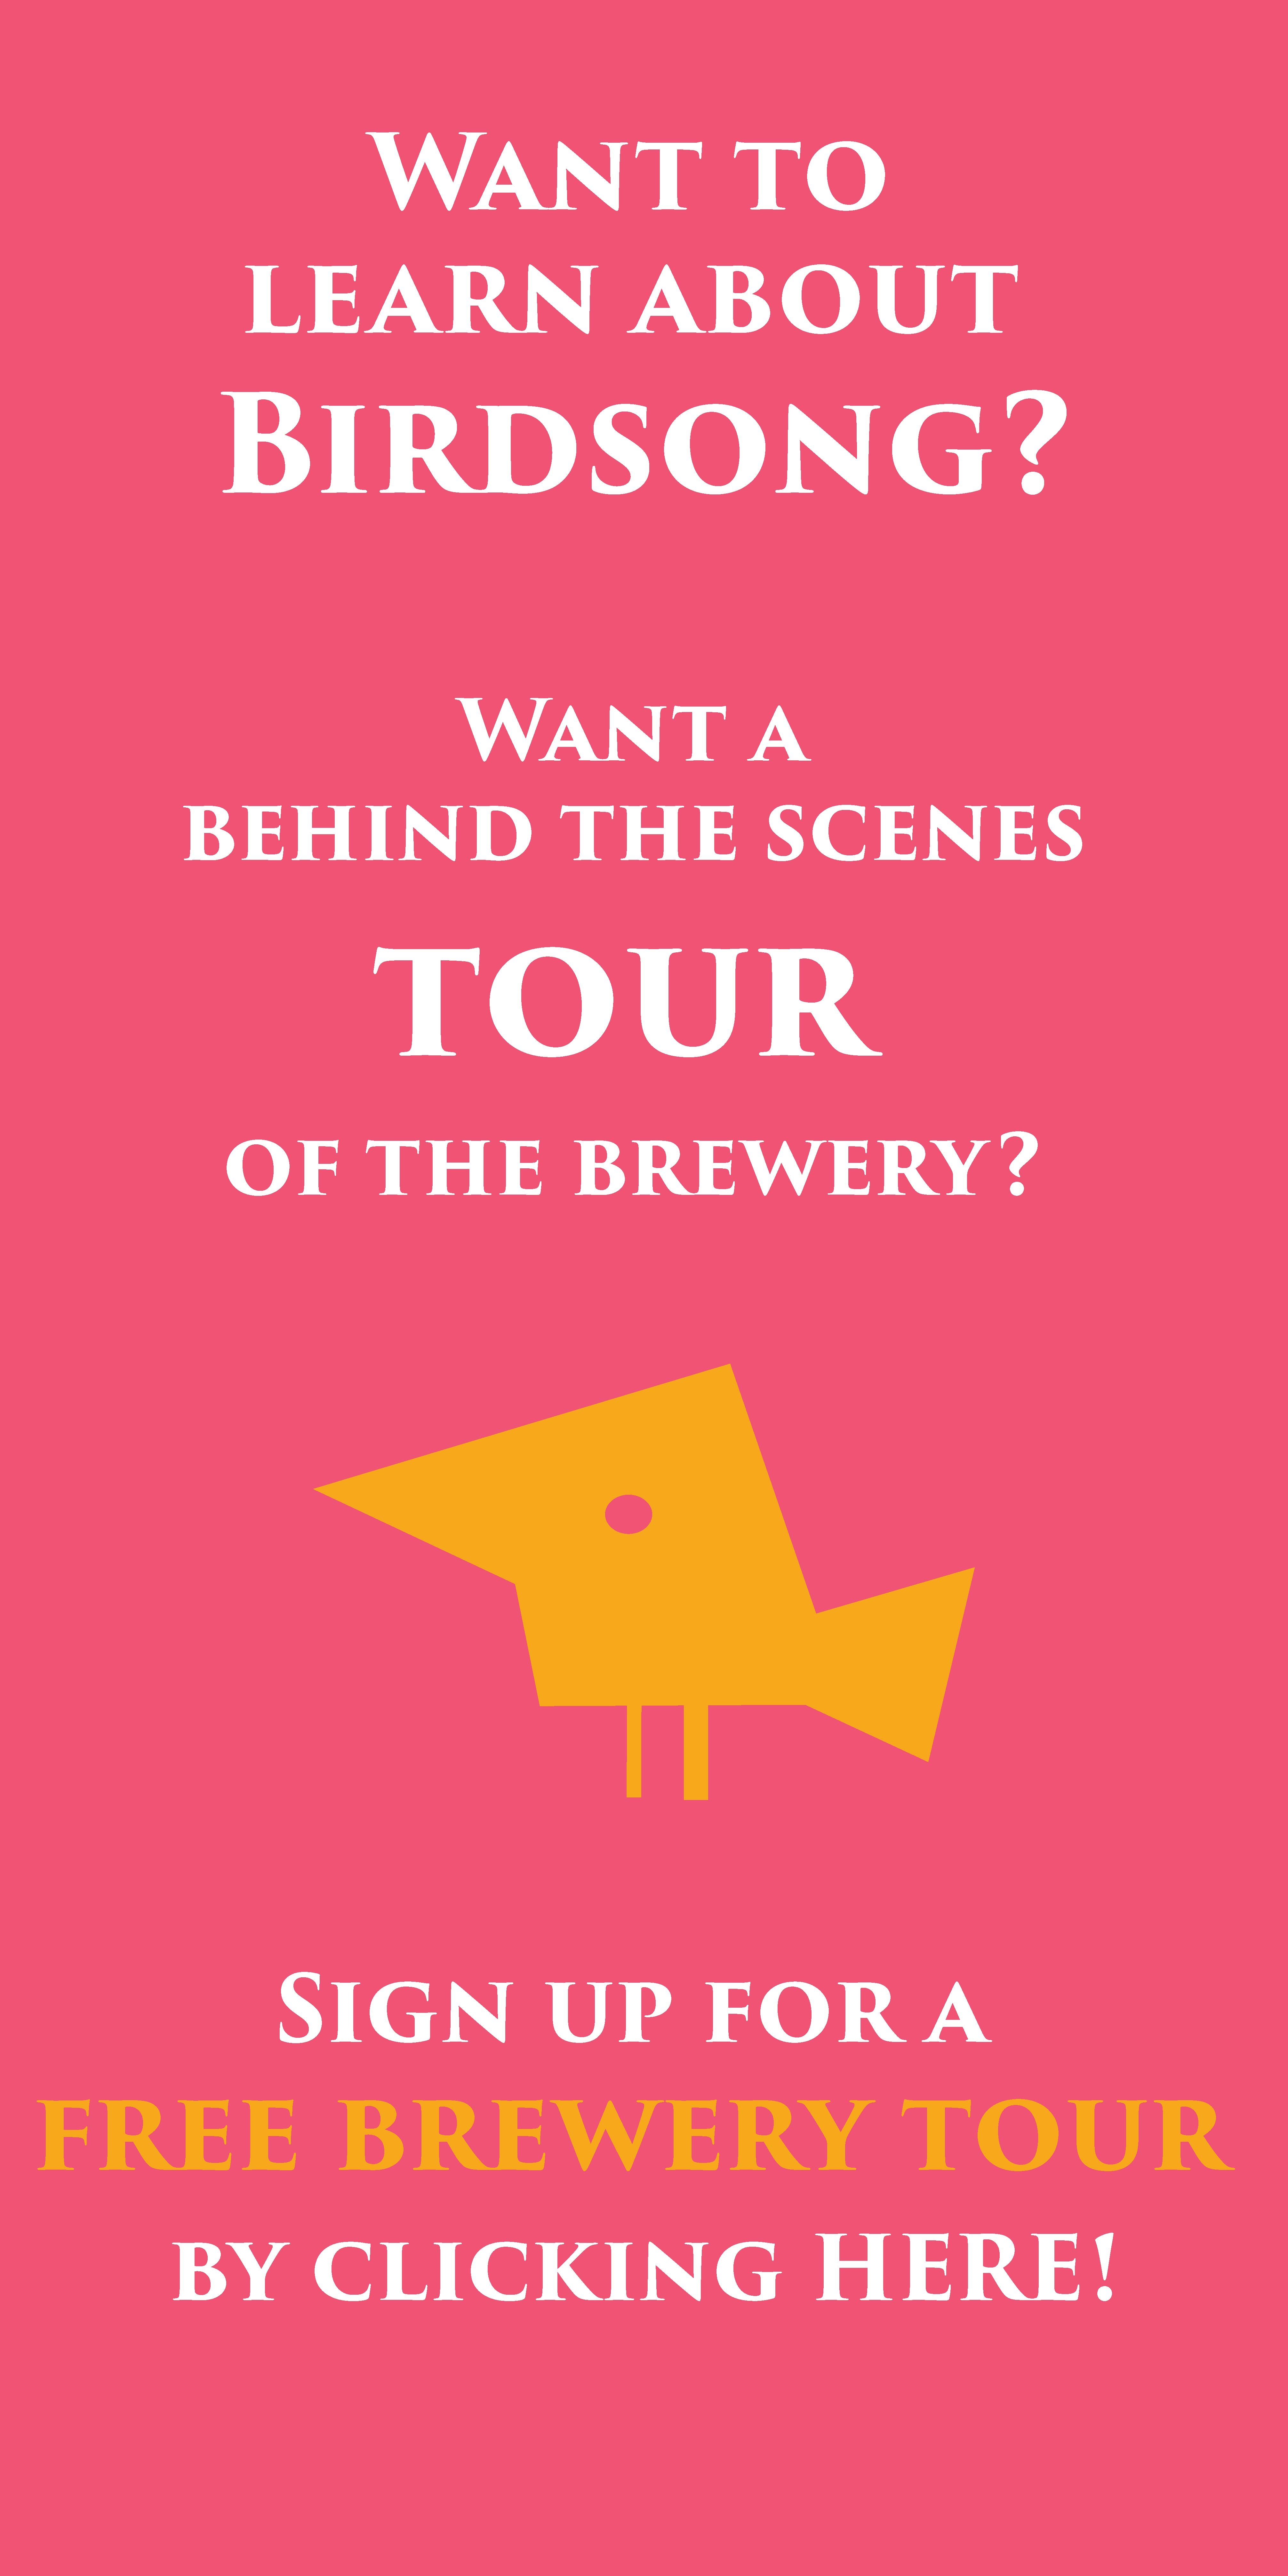 Click on the box to sign up for your tour!